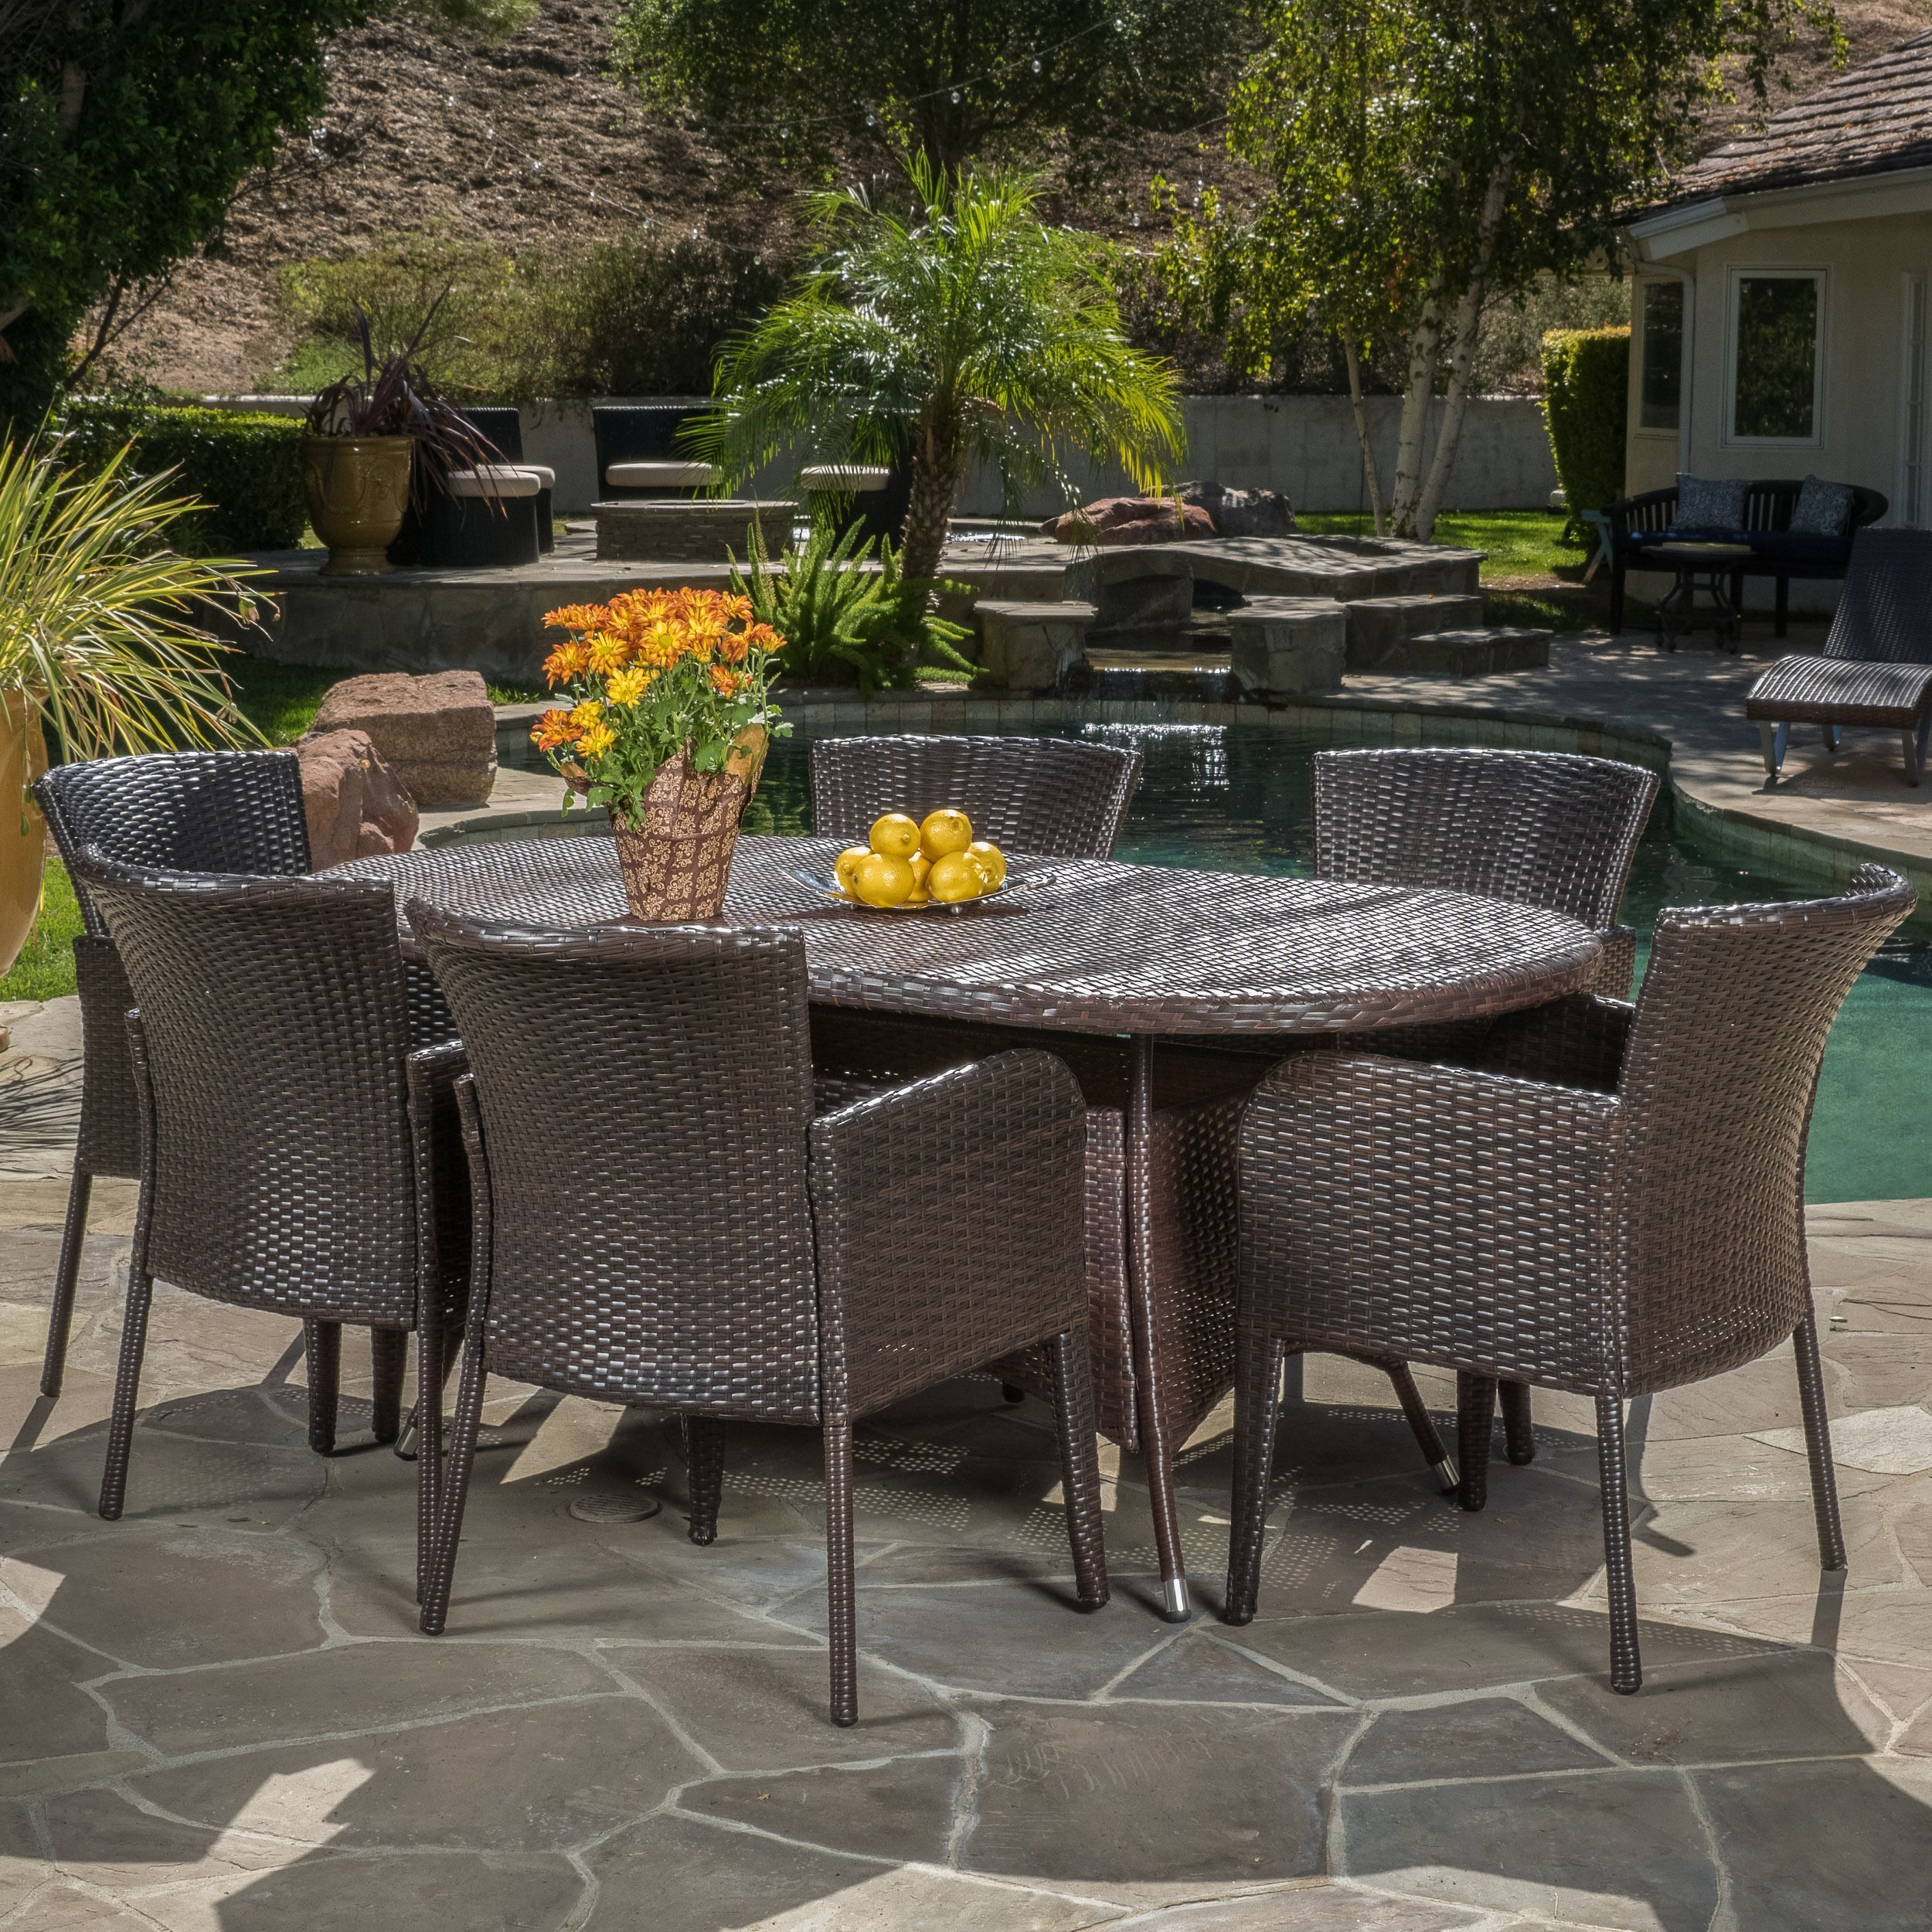 Corsica Outdoor 7-piece Wicker Dining Set by Christopher Knight Home (Multi-Brown), Brown, Size 7-Piece Sets, Patio Furniture (Iron)